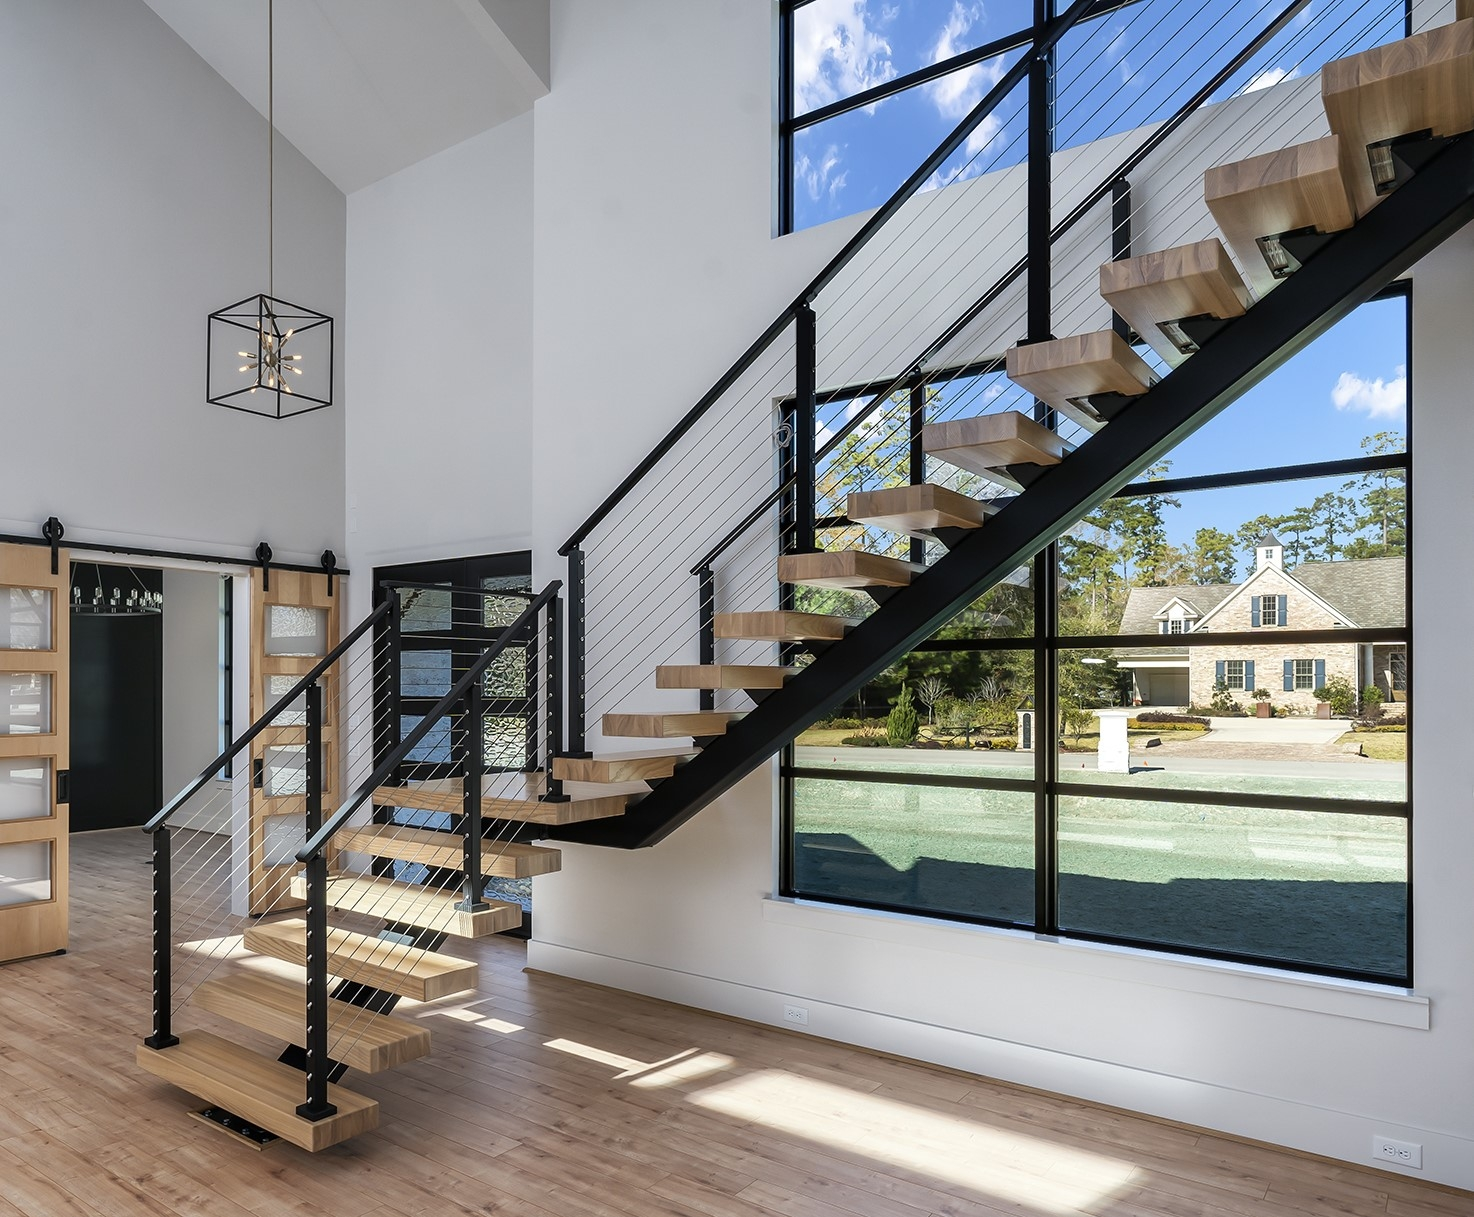 Steel Stairs Prefabricated Diy Metal Stairs Viewrail | Center Staircase House Plans | Georgian House | Spiral | Split | Room | Contemporary